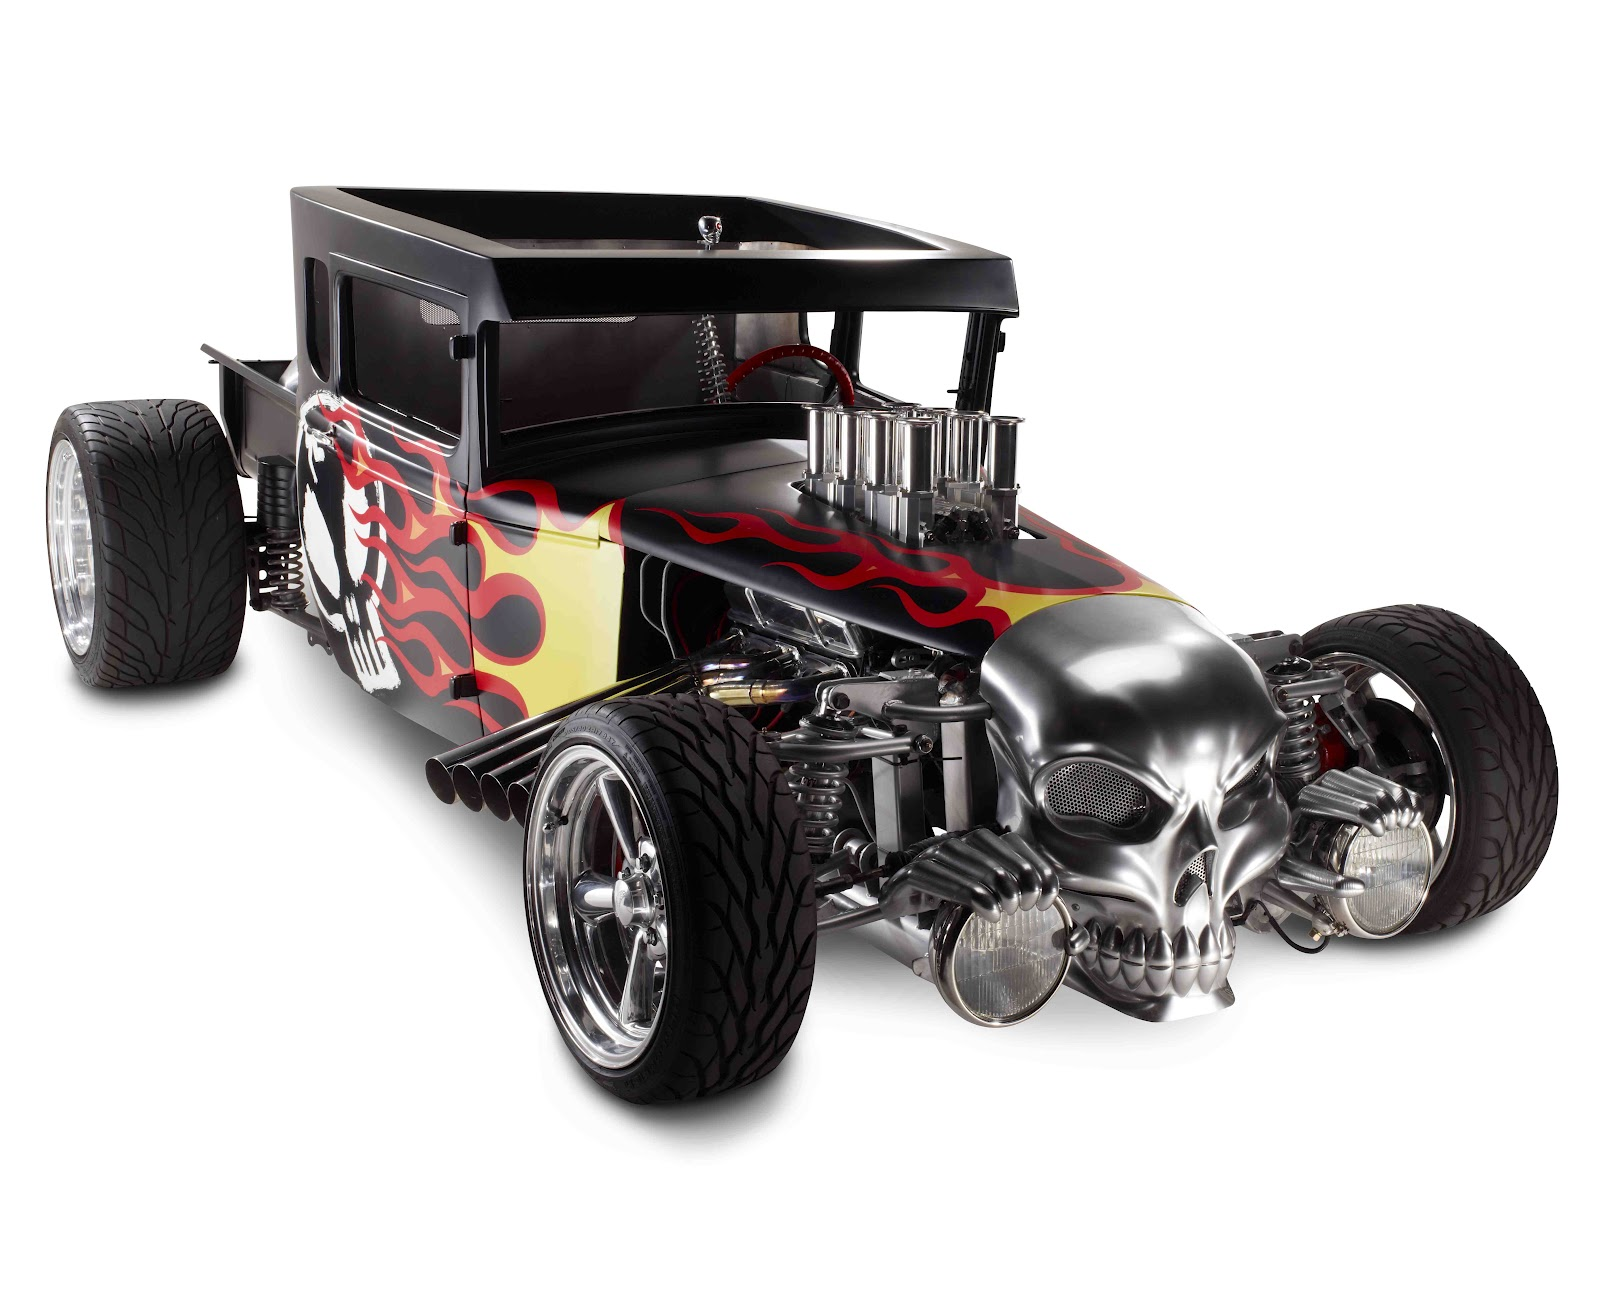 4 wheel drive rc trucks with Interactive Hot Wheels Exhibit On Track For Childrens Museum Of Indianapolis on 1985 Chevrolet K5 Blazer as well New 2018 Chrysler Pacifica Murfreesboro Tn 2c4rc1gg3jr174479 likewise 391353726608 together with Lego Technic Monster Truck 42005 as well Gas Powered Rc Monster Truck 110 2 4g Hummer Remote Control Car.